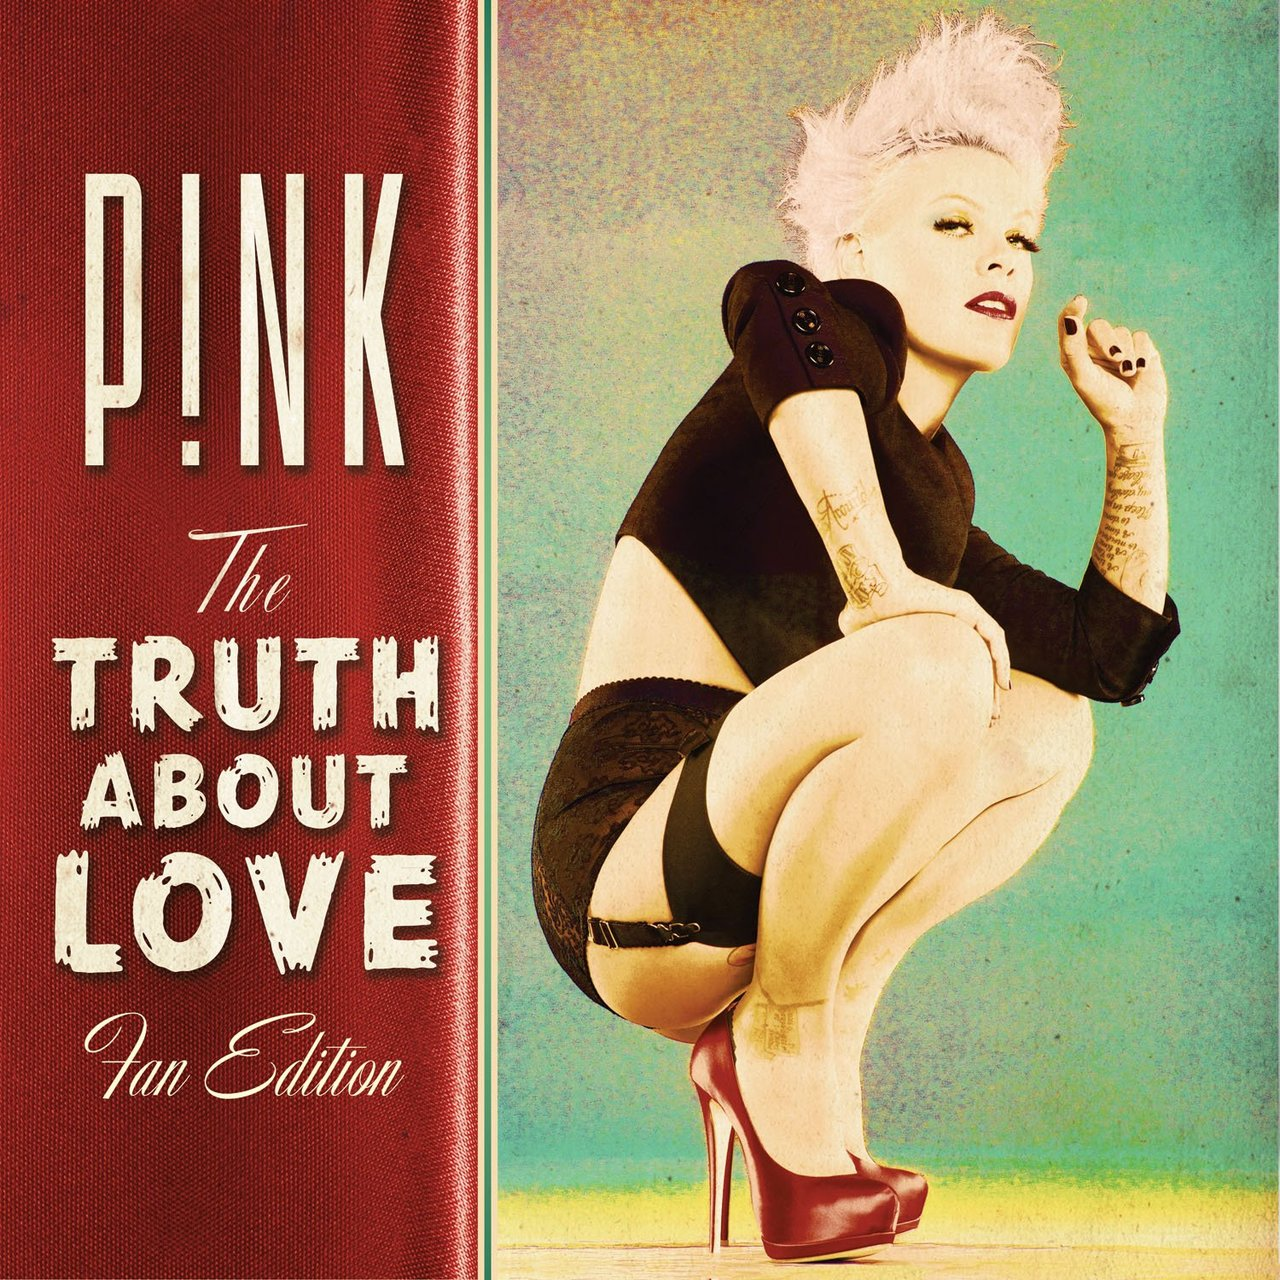 http://1.bp.blogspot.com/-Lz6jdReb0_A/UMa627g8kDI/AAAAAAAAATA/VSZTiqhdjDs/s1600/P!nk+-+The+Truth+About+Love+(Fan+Edition).jpg